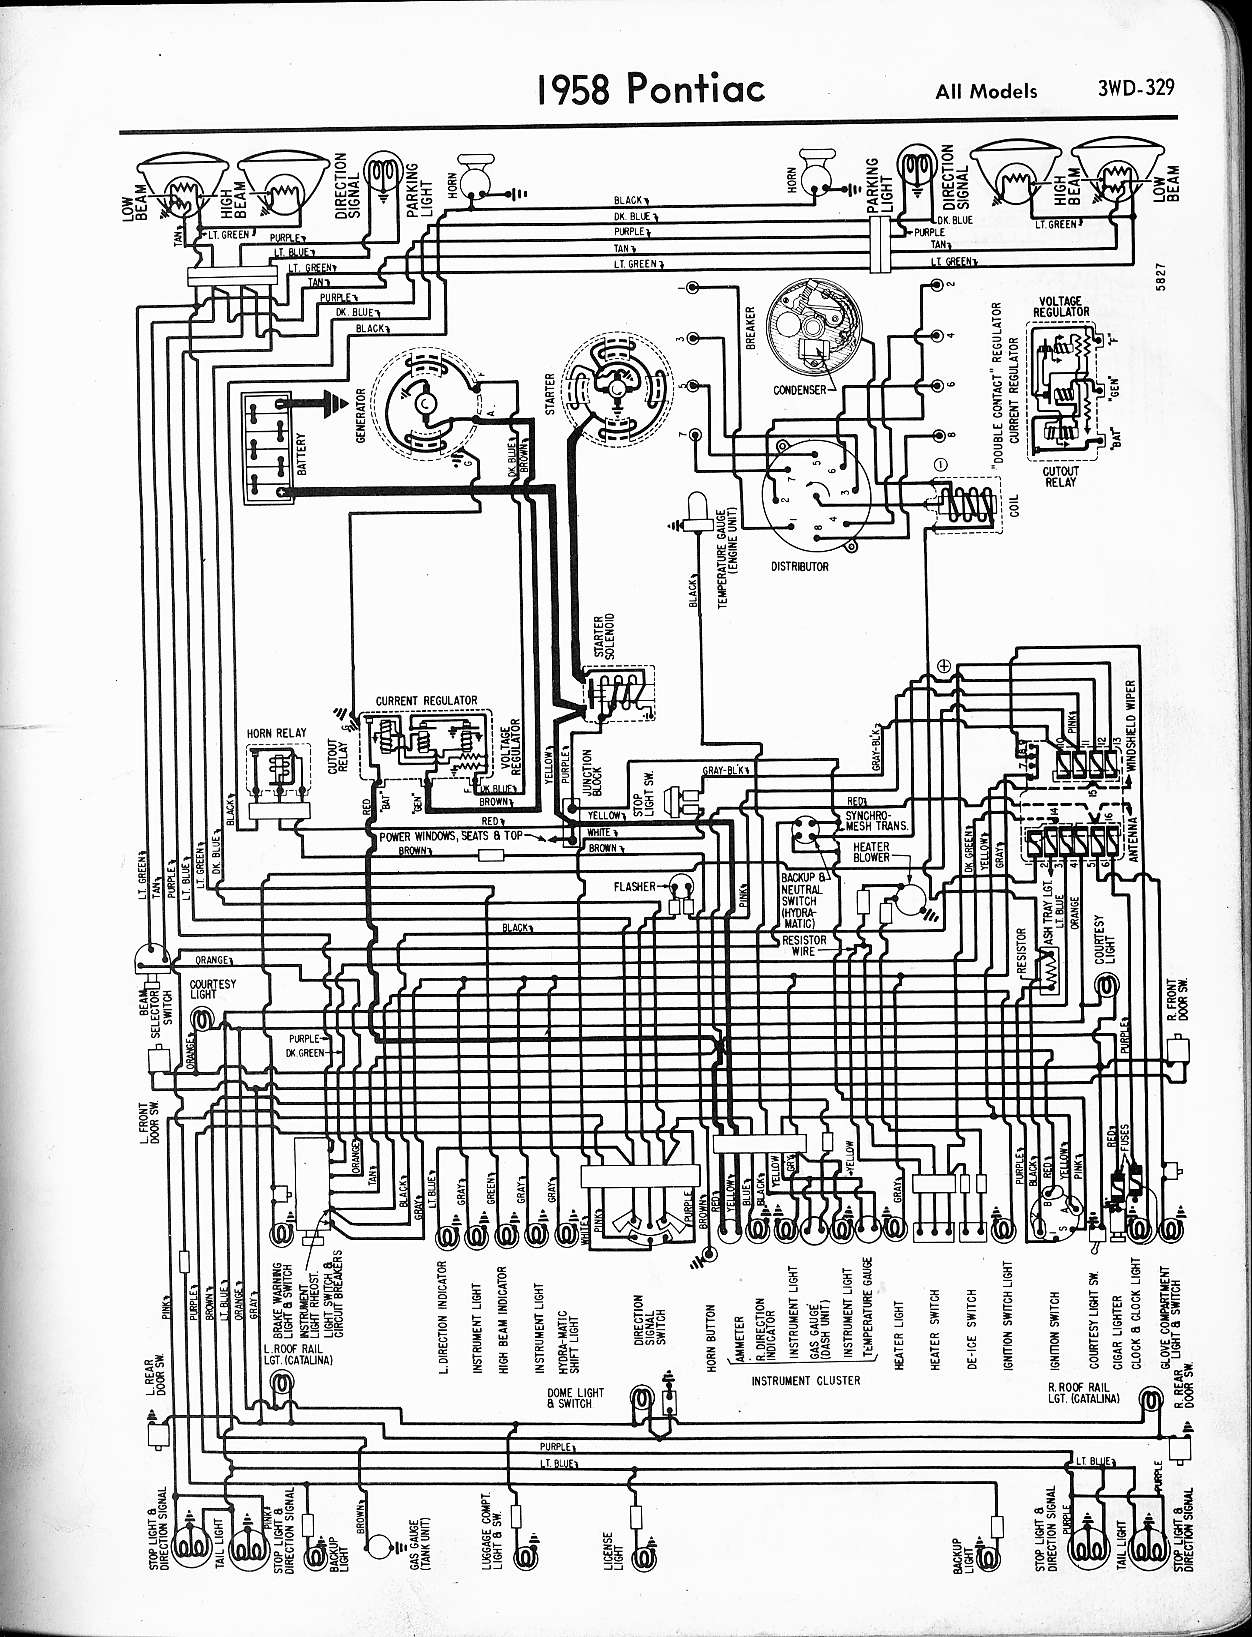 wallace racing wiring diagrams rh wallaceracing com 1978 Catalina 1970 Catalina